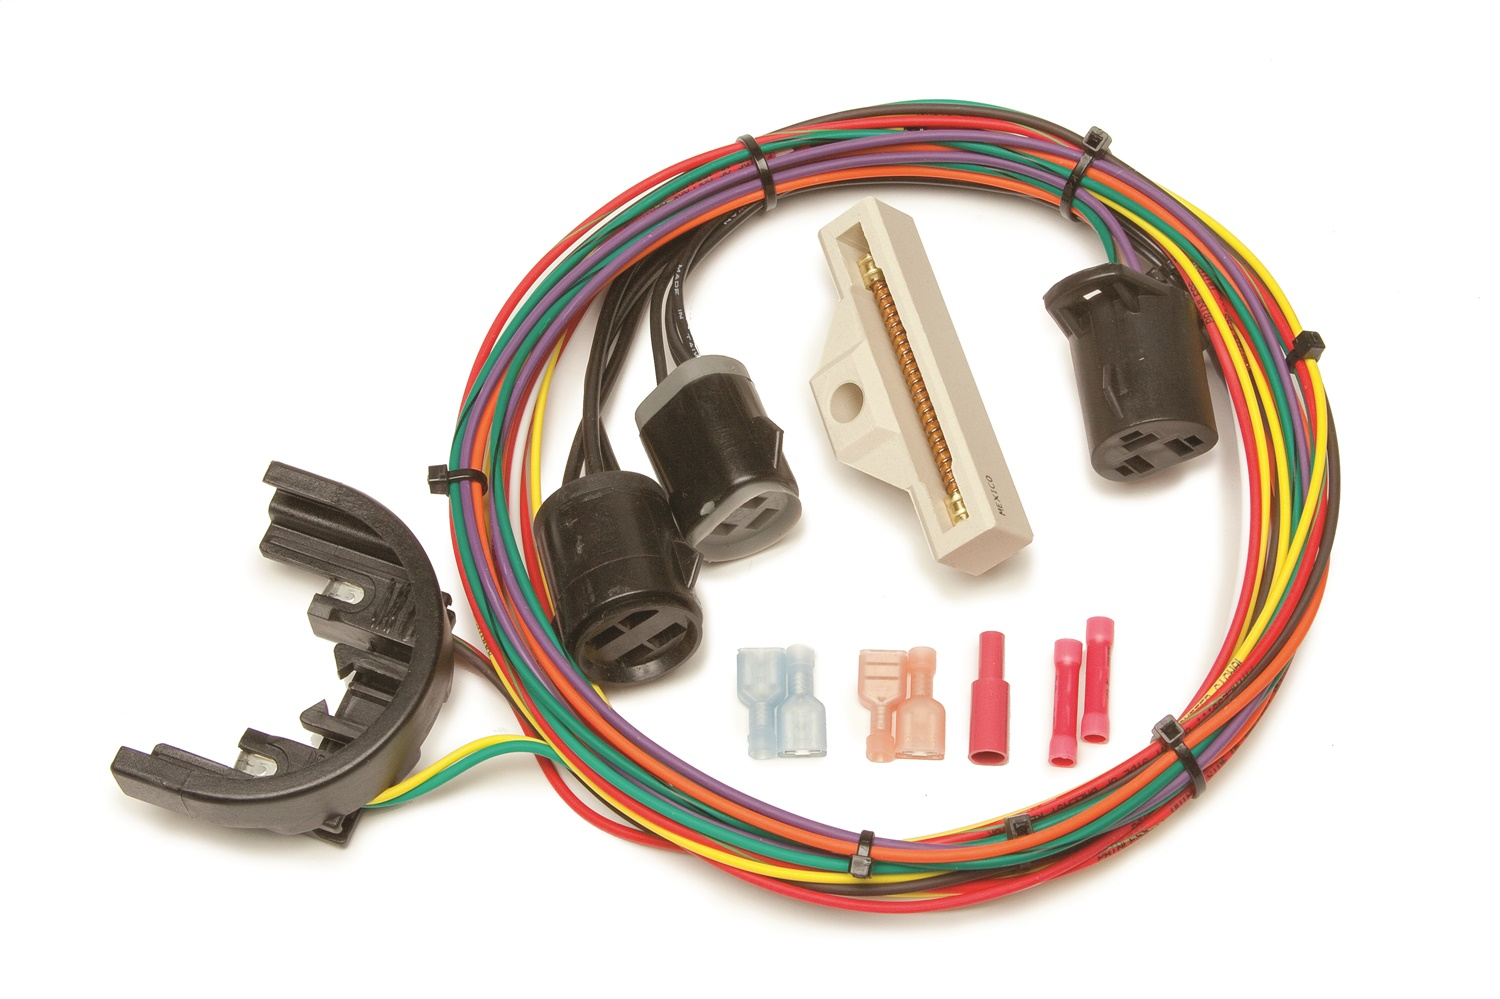 painless wiring 30812 duraspark ii ignition harness ebay